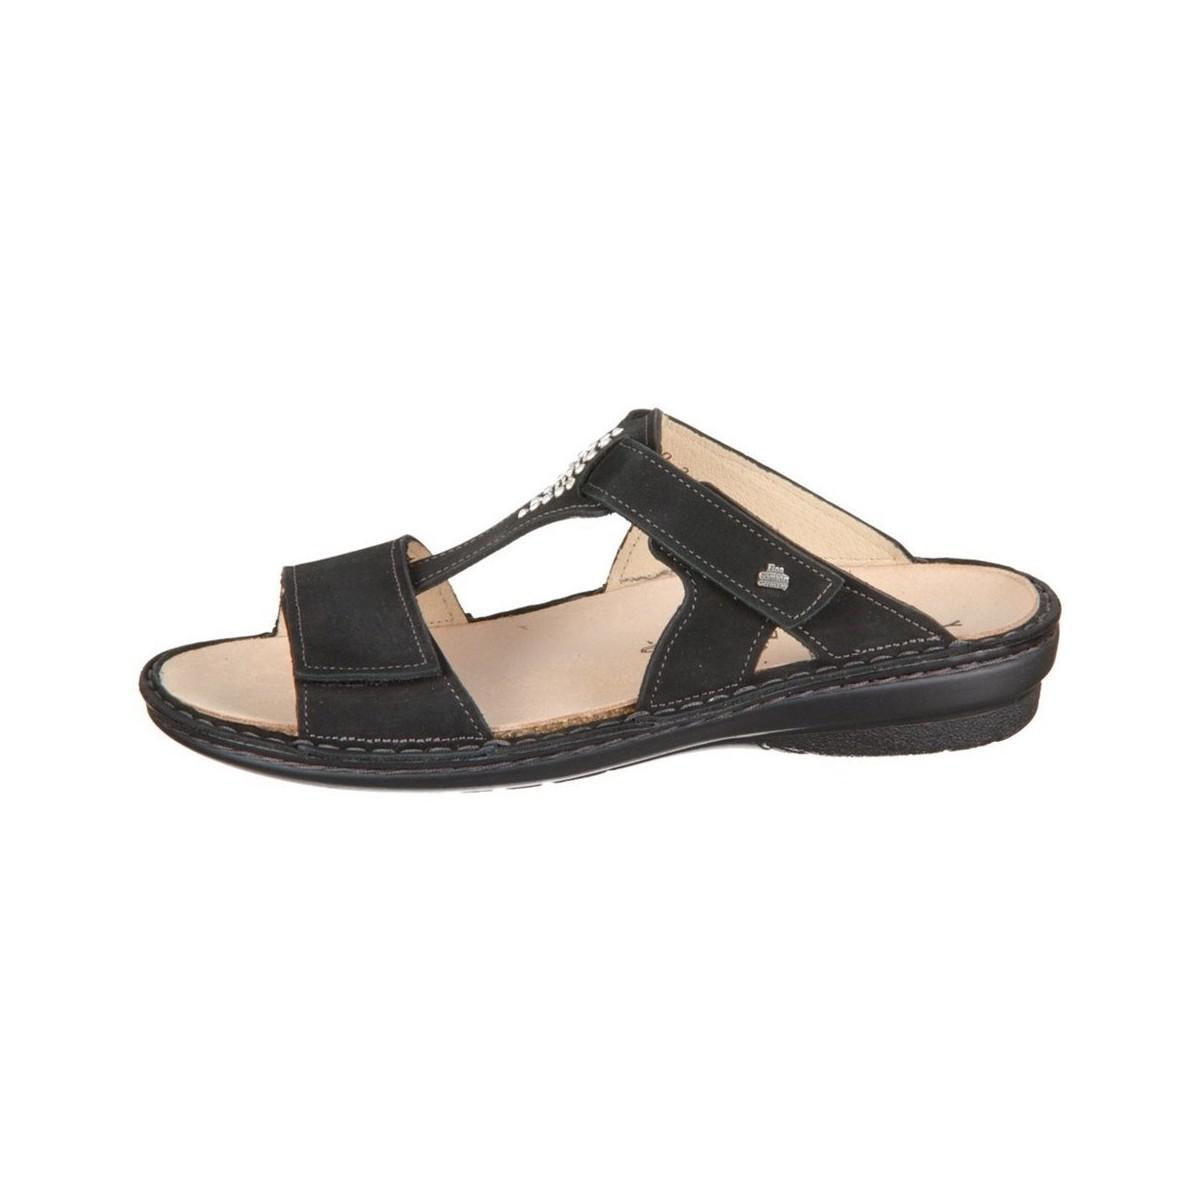 Finn Verin women's Mules / Casual Shoes in Sale Get To Buy Discount 2018 New Newest Sale Online Amazing Price Cheap Price Popular For Sale Ikx6s2OuFK